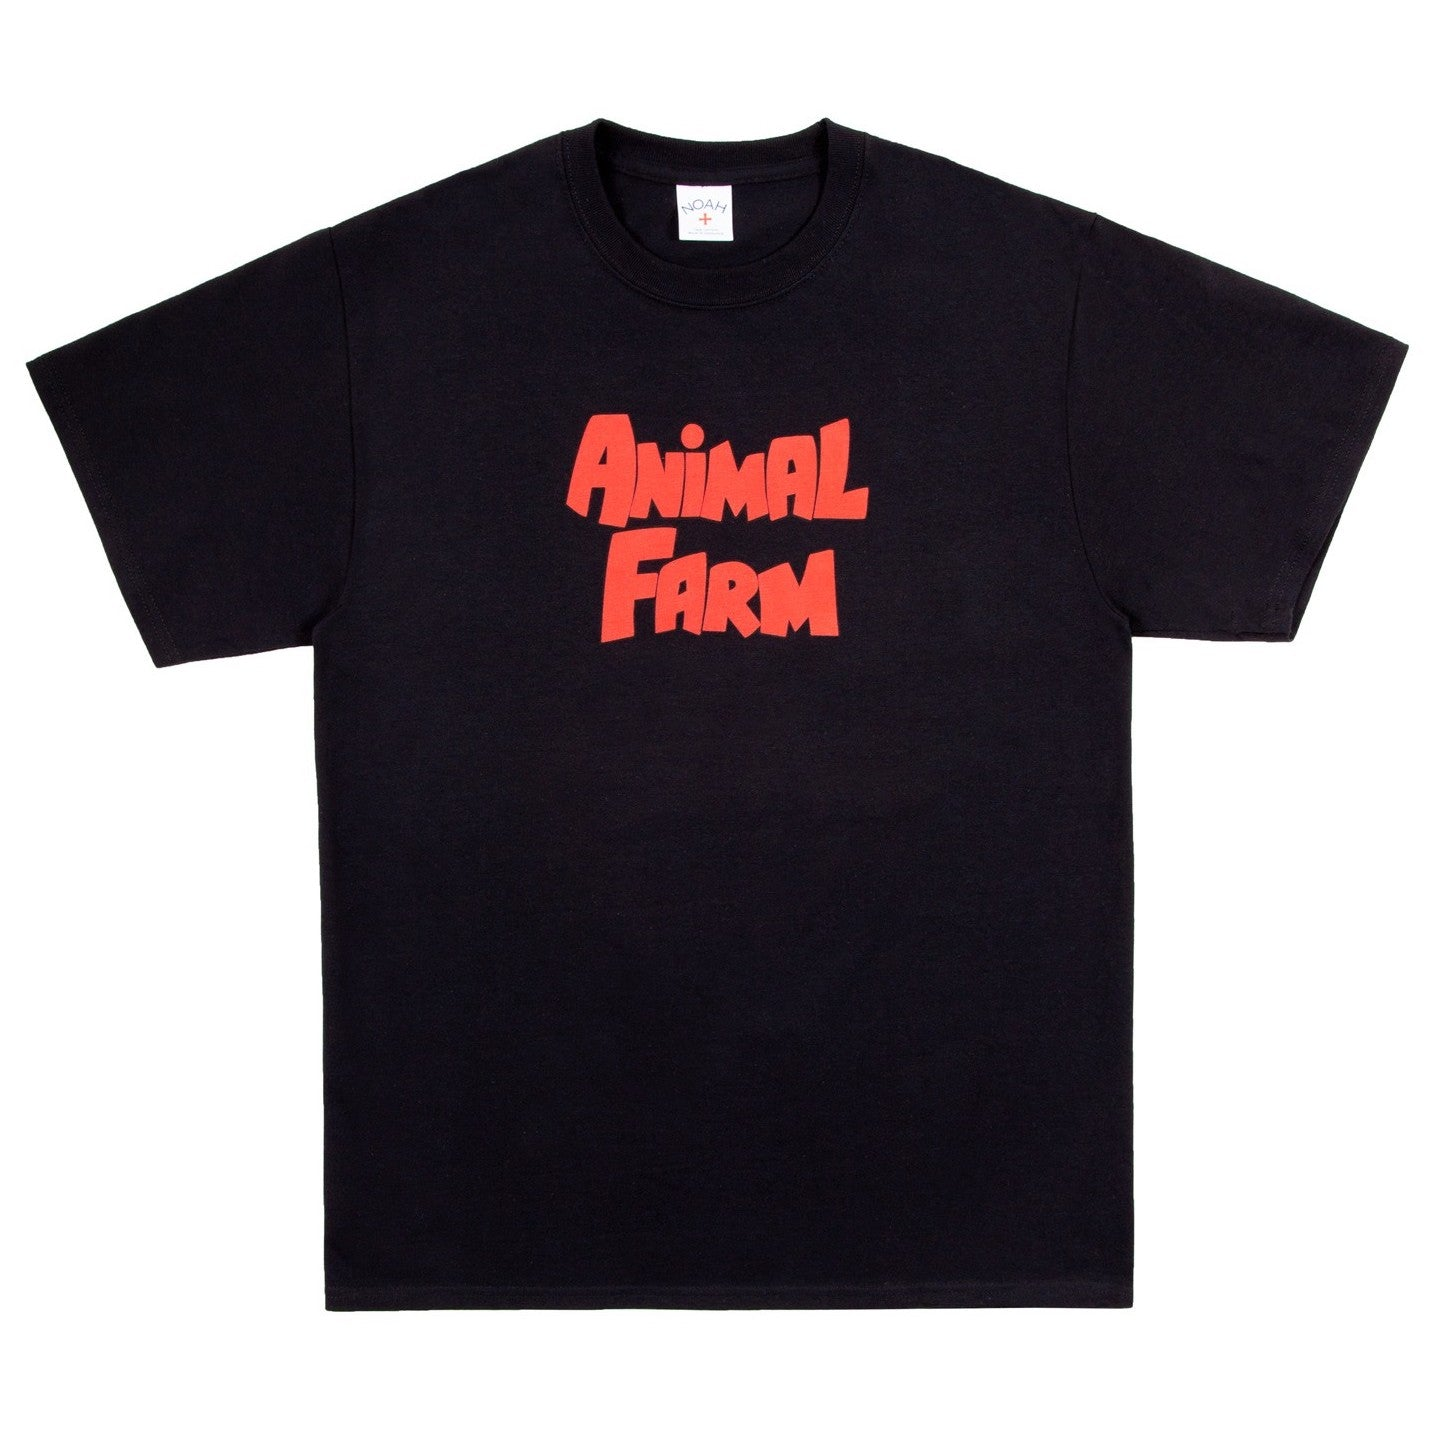 NOAH x Animal Farm - Logo Tee - Black